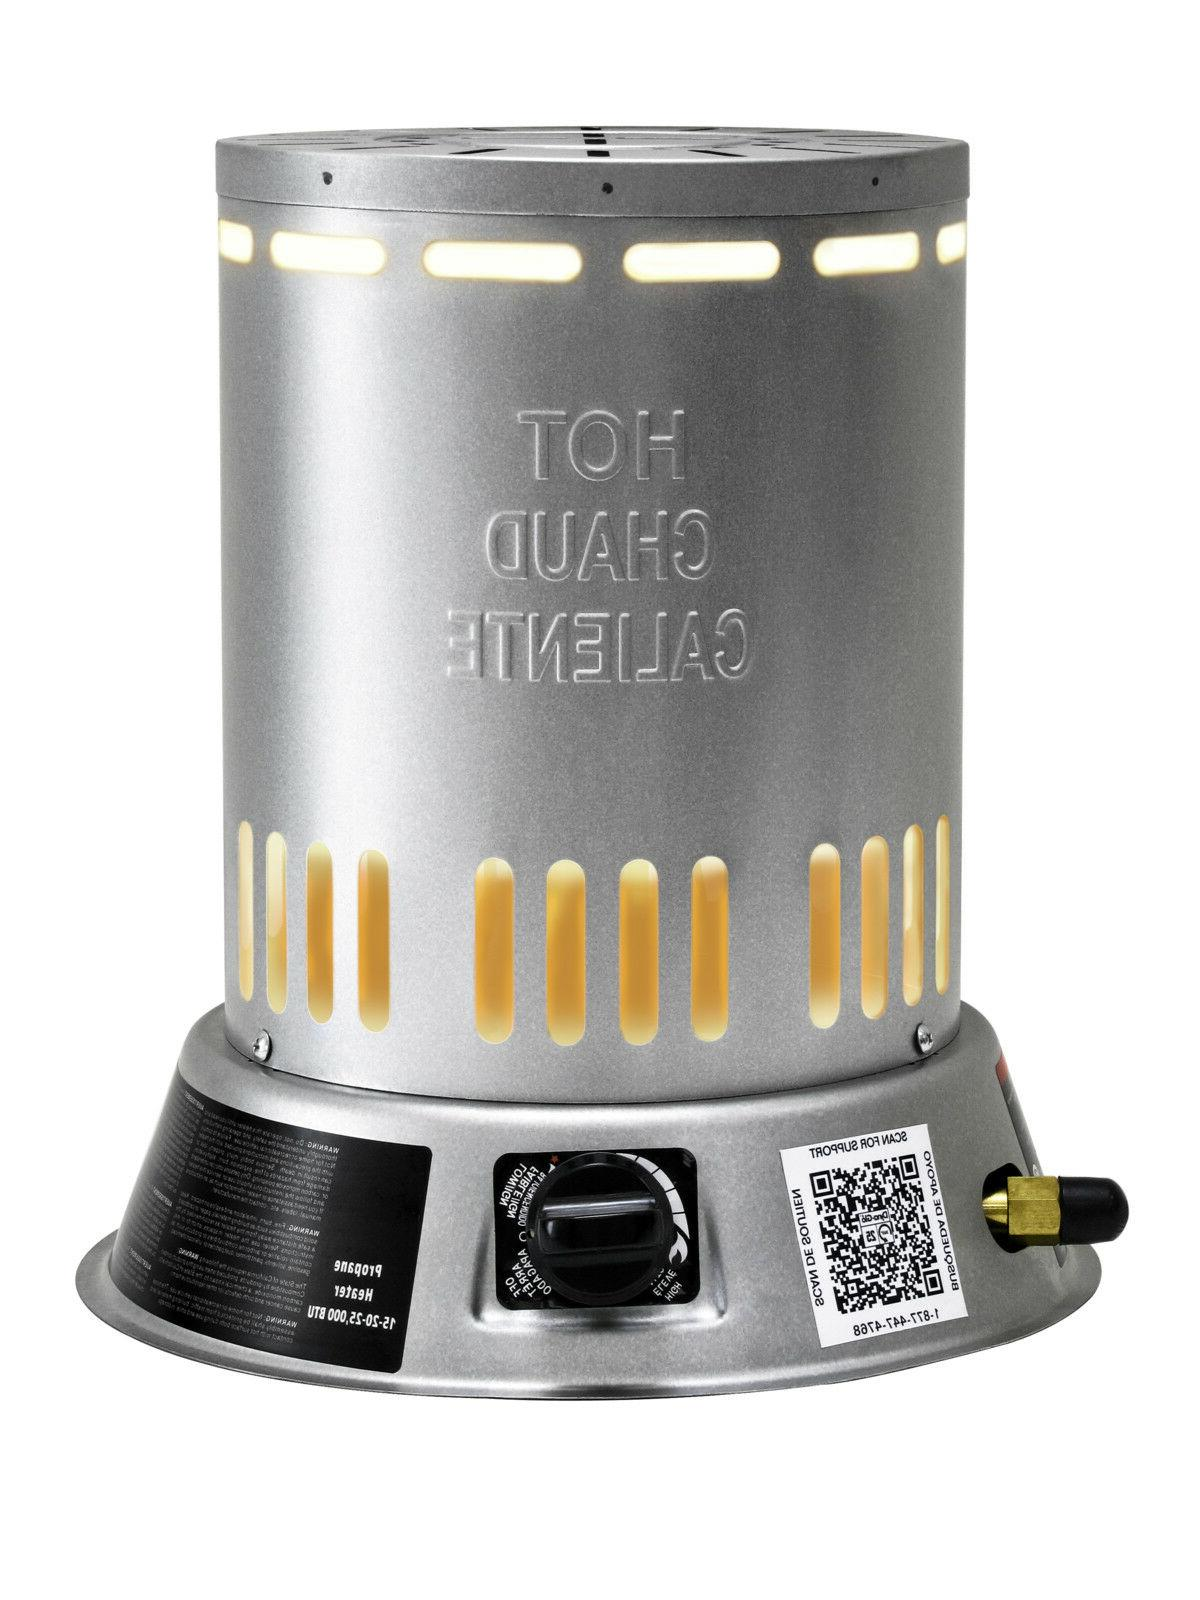 Convection Space Heater Liquid Propane Automatic Shutoff In/